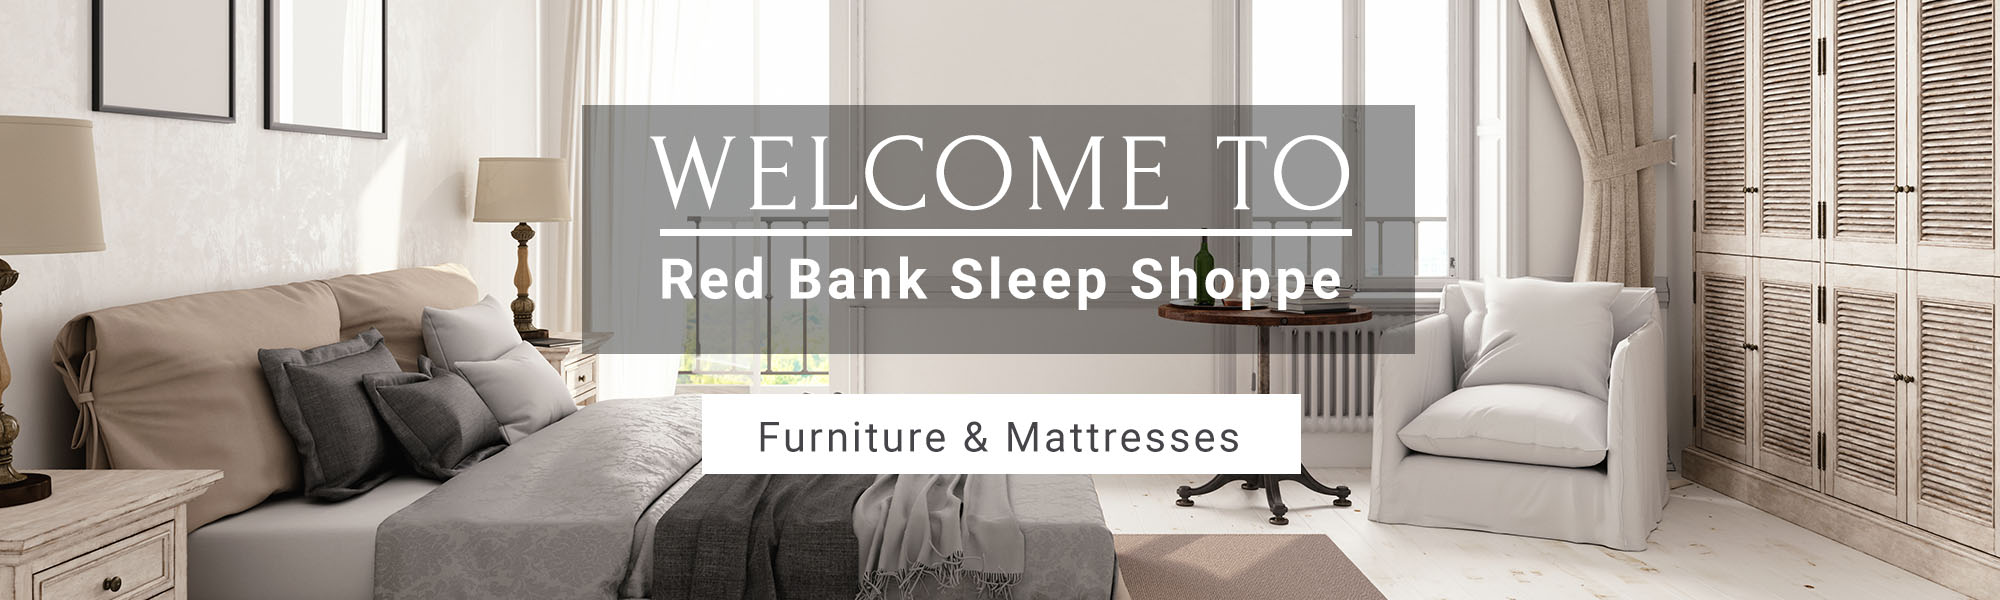 Superbe Mattresses And Furniture In Red Bank, NJ. | Red Bank Sleep Shoppe